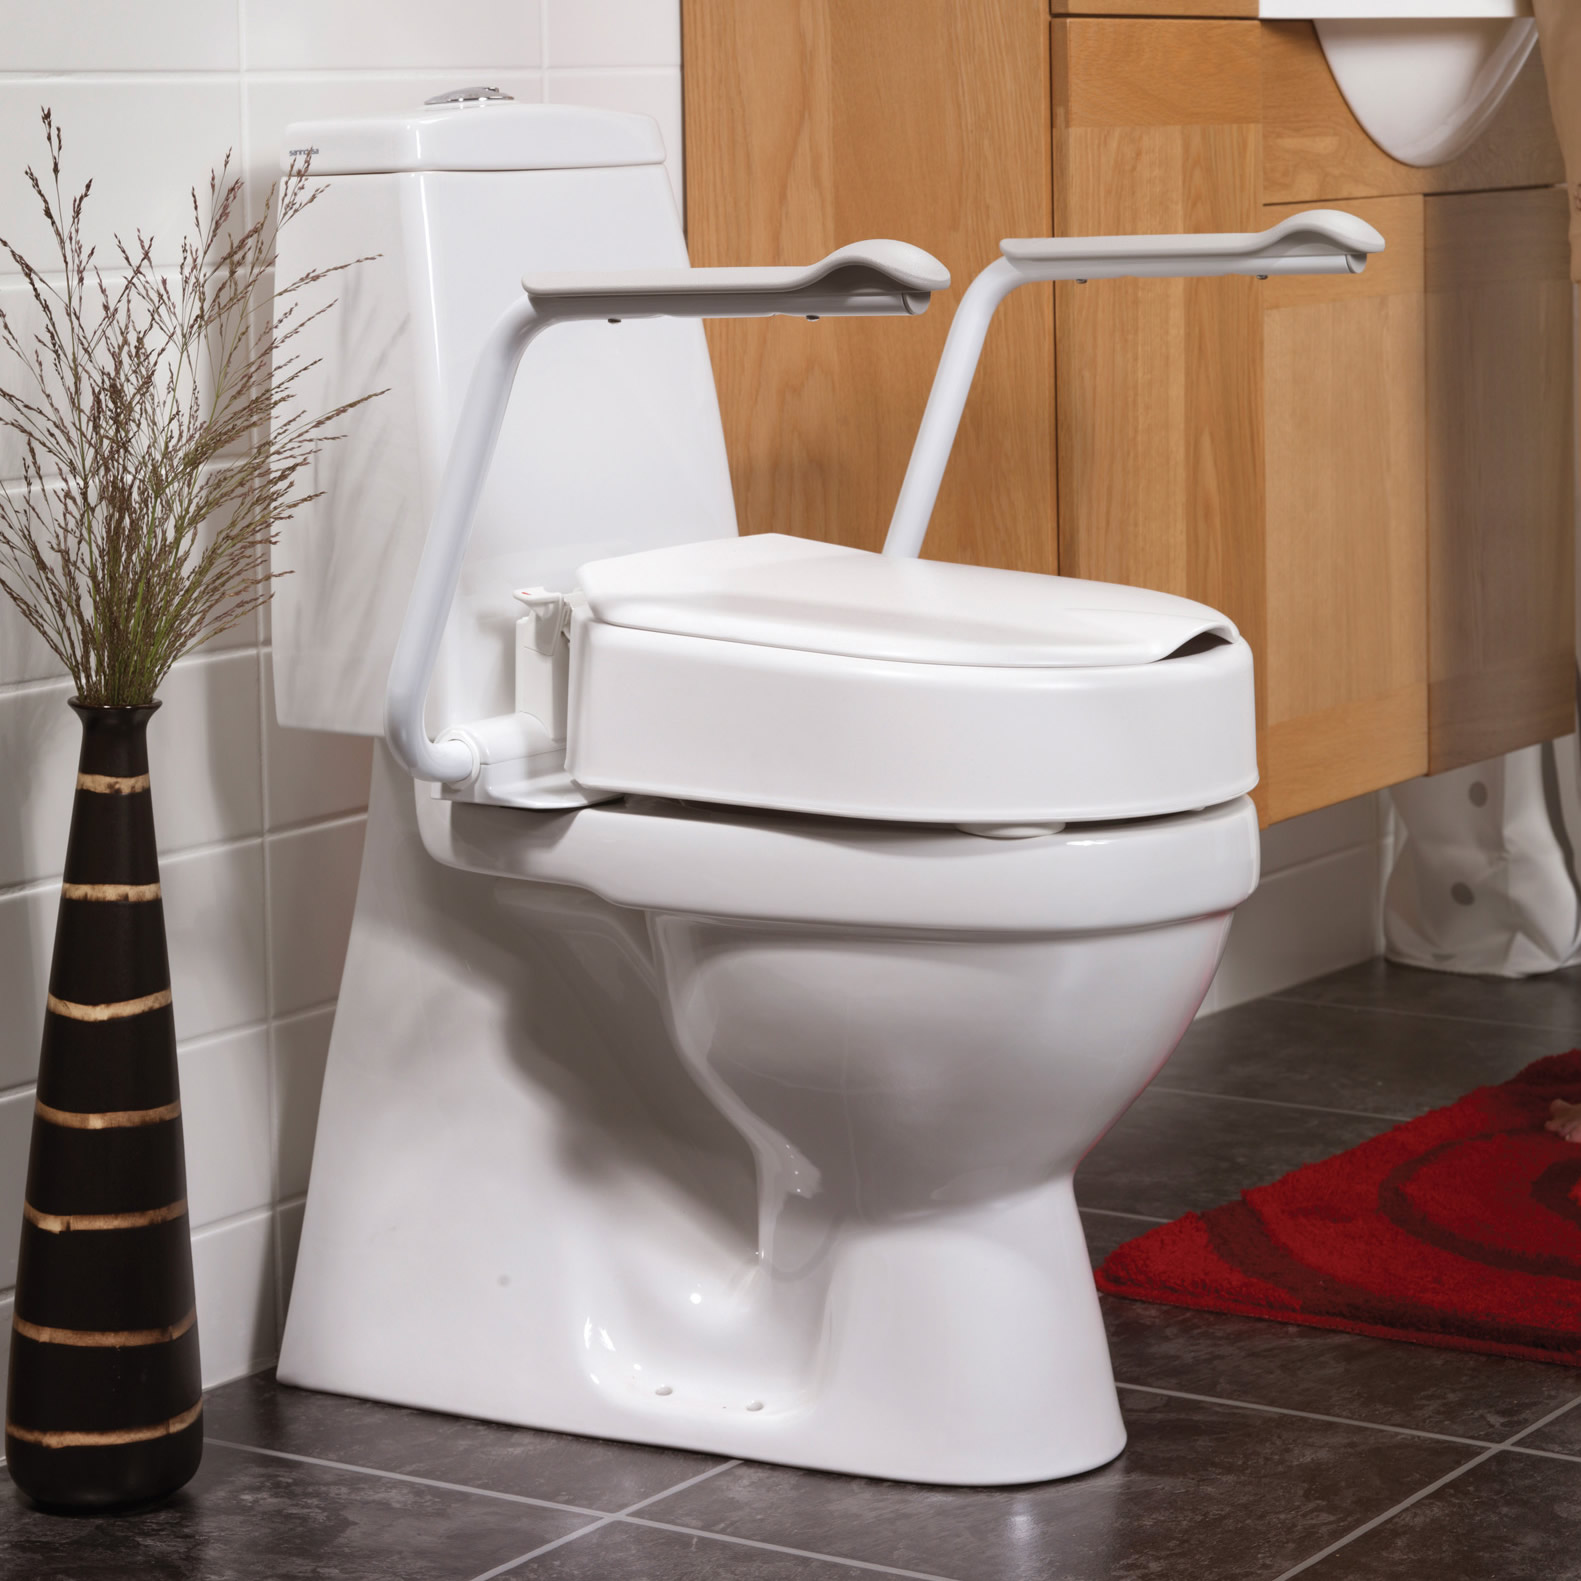 7 Tips For Creating A Senior Friendly Bathroom Macdonald